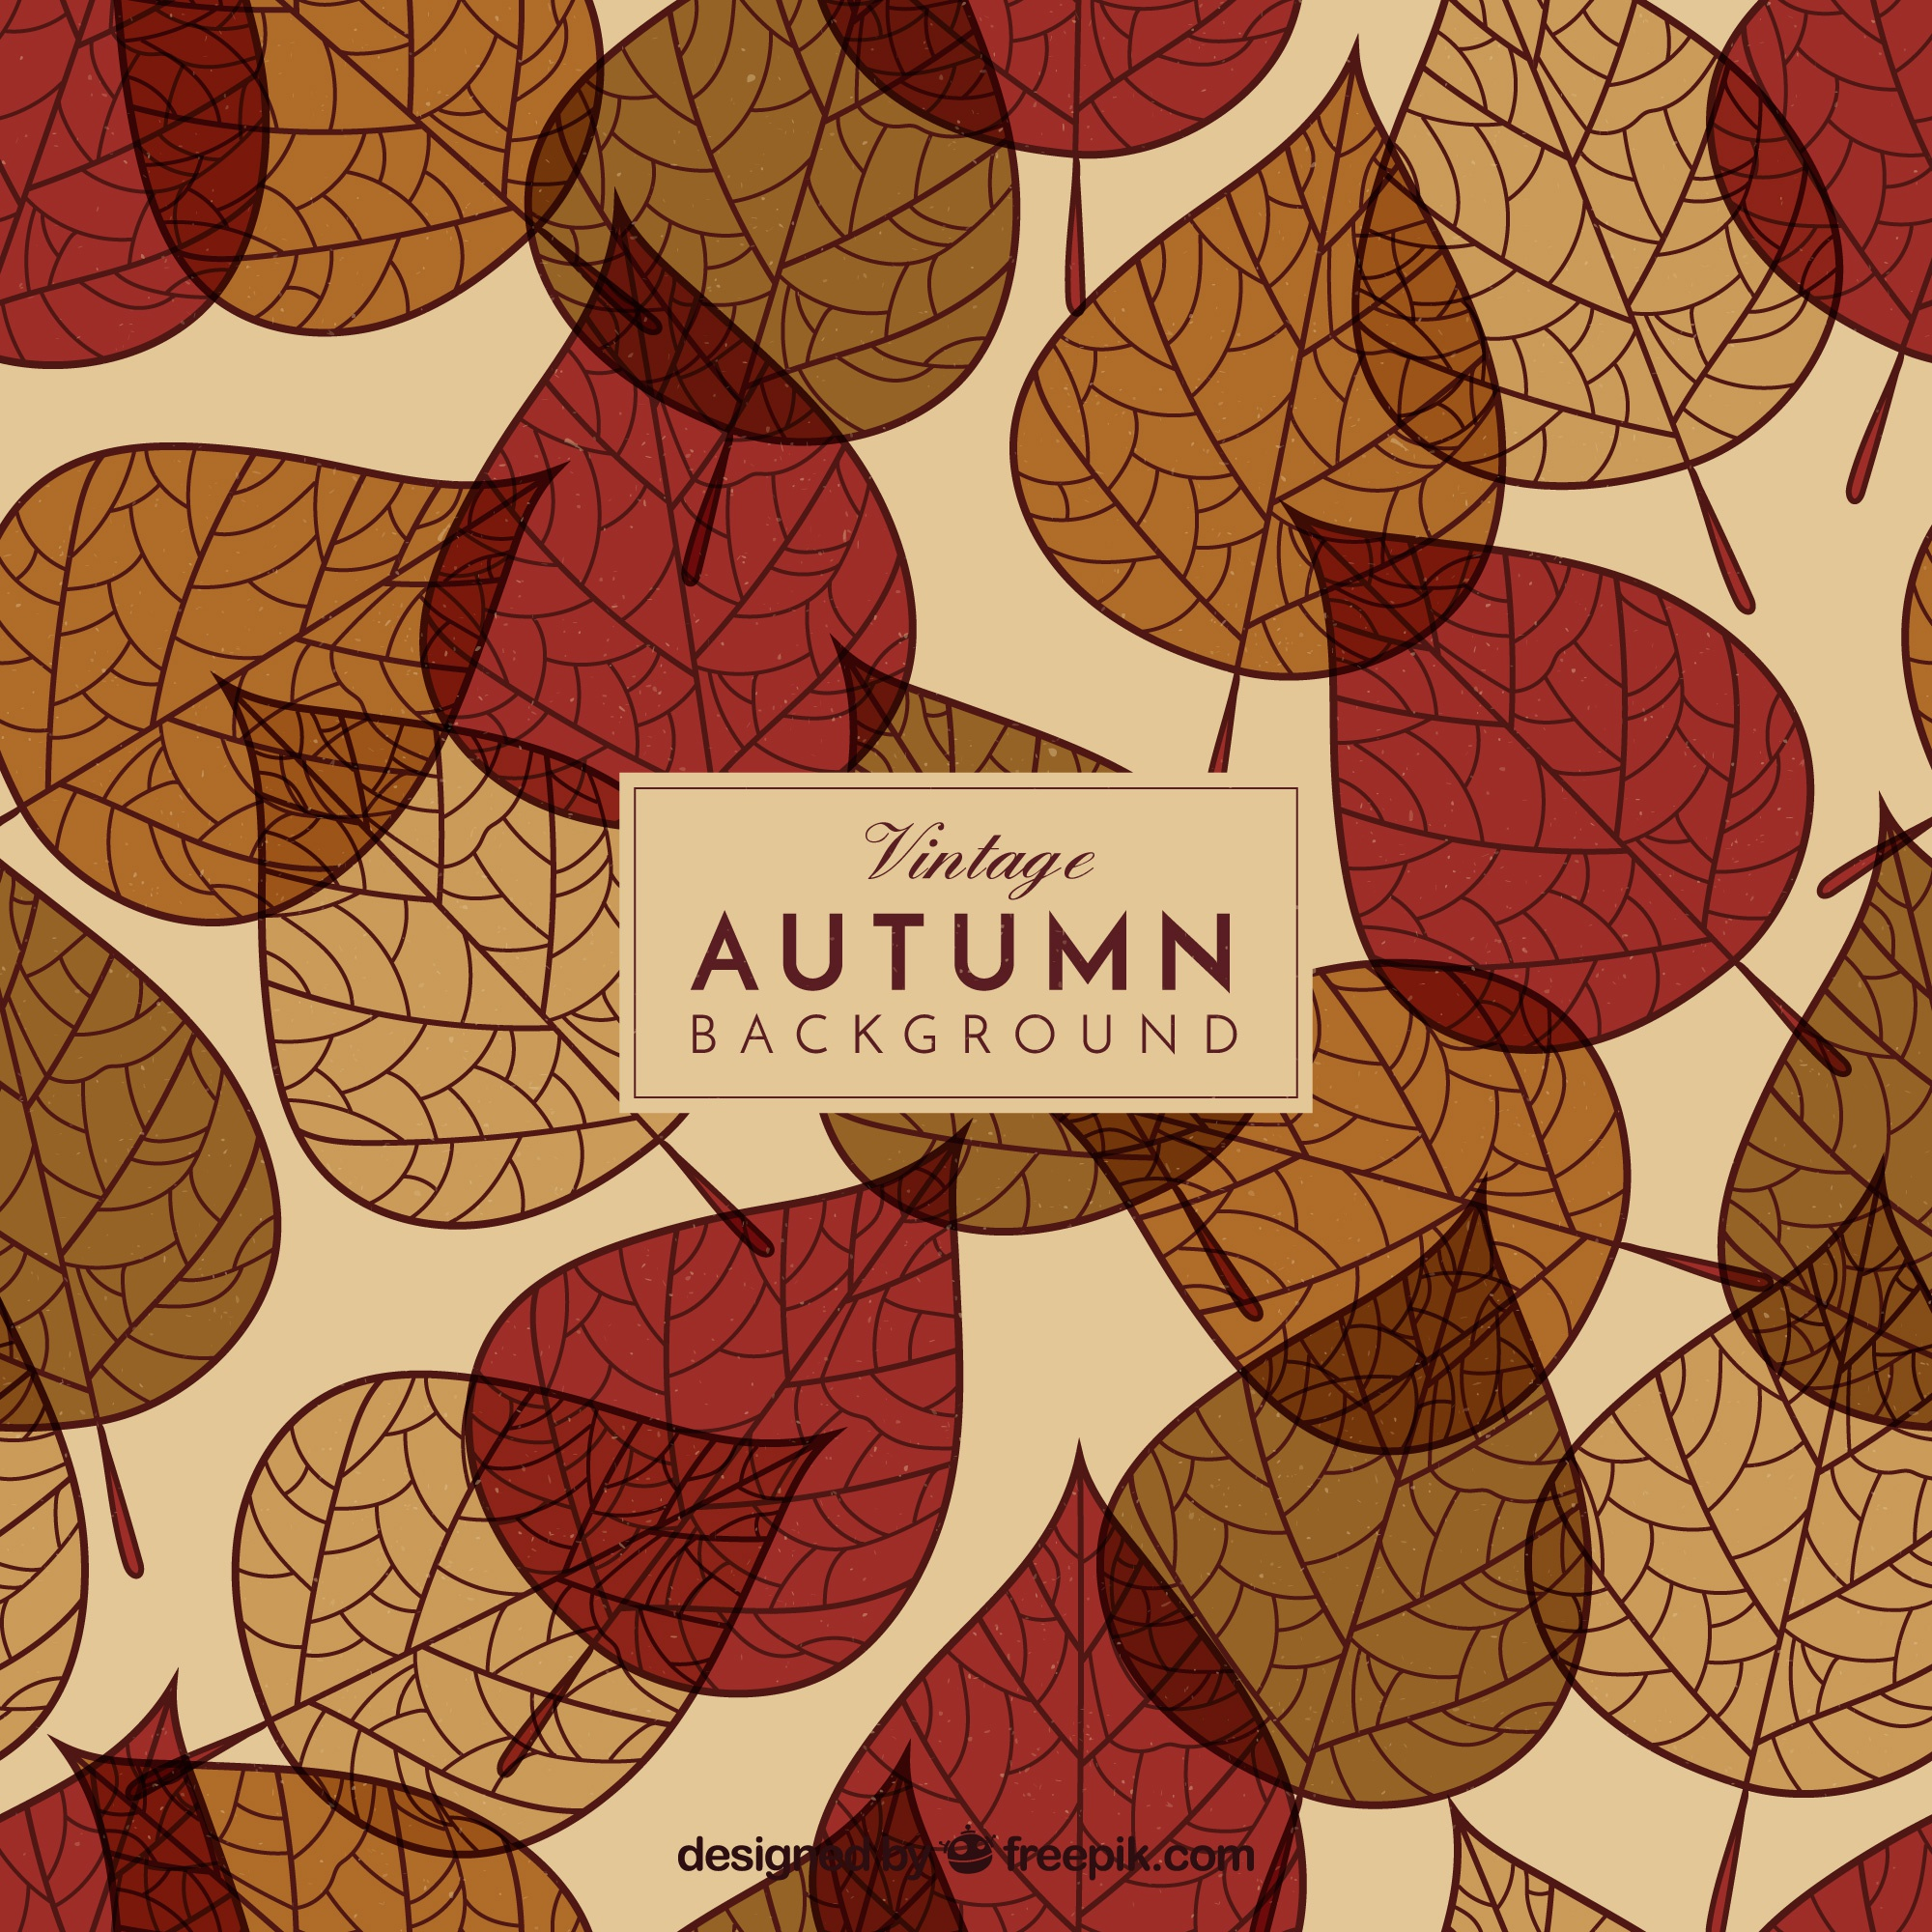 Lovely hand drawn autumn leaves background